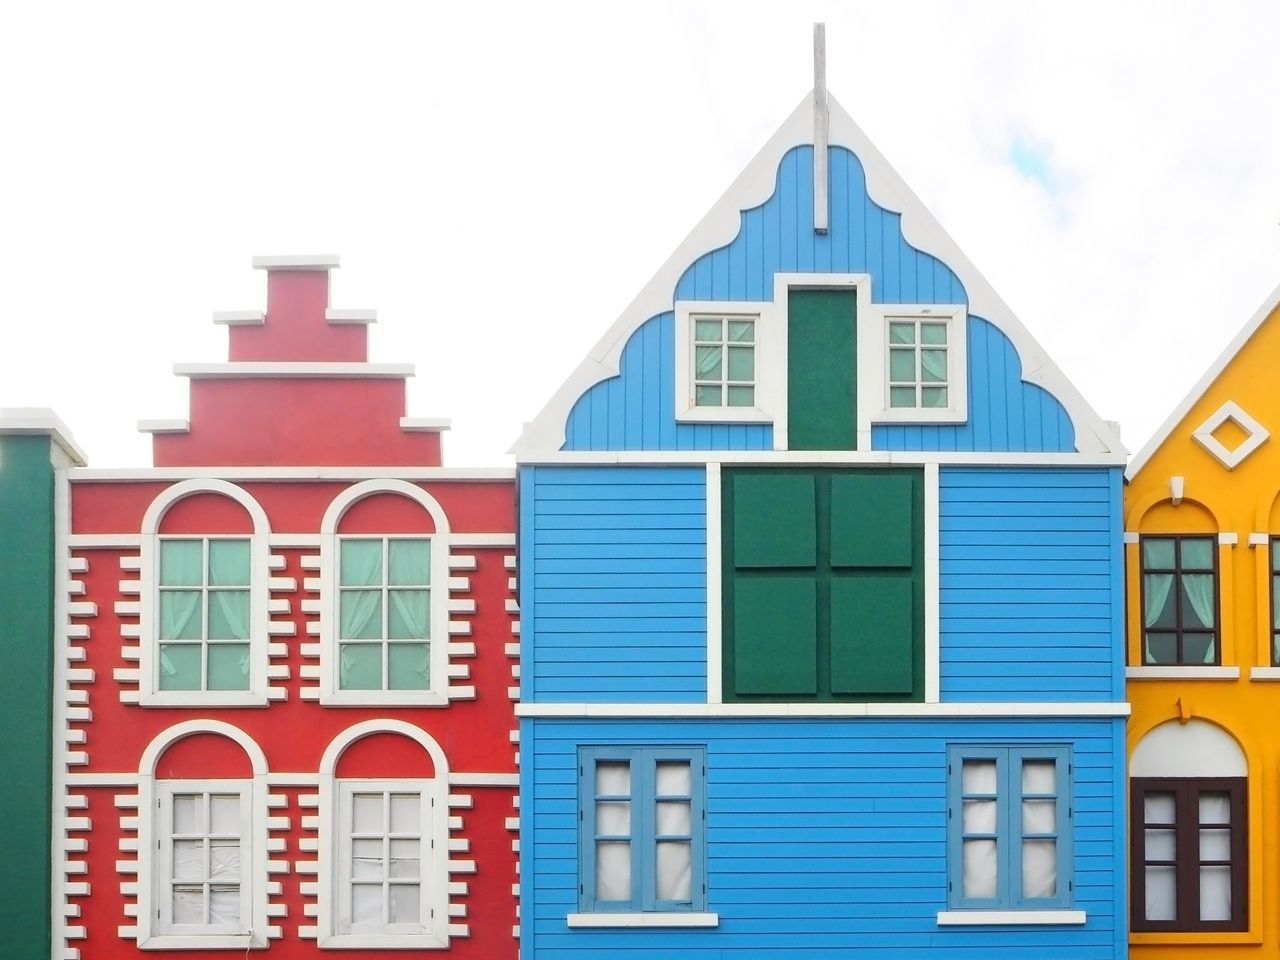 ❤️🏠💙🏠💛 Building Exterior Architecture Multi Colored Window Built Structure Outdoors House Travel Destinations Travel Decoration Still Life Close-up No People Tadaa Community Exceptional Photographs Minimalism Minimalist Architecture Capture The Moment Landscapes Colorful Front View Achitecture Windows Art And Craft Street Photography